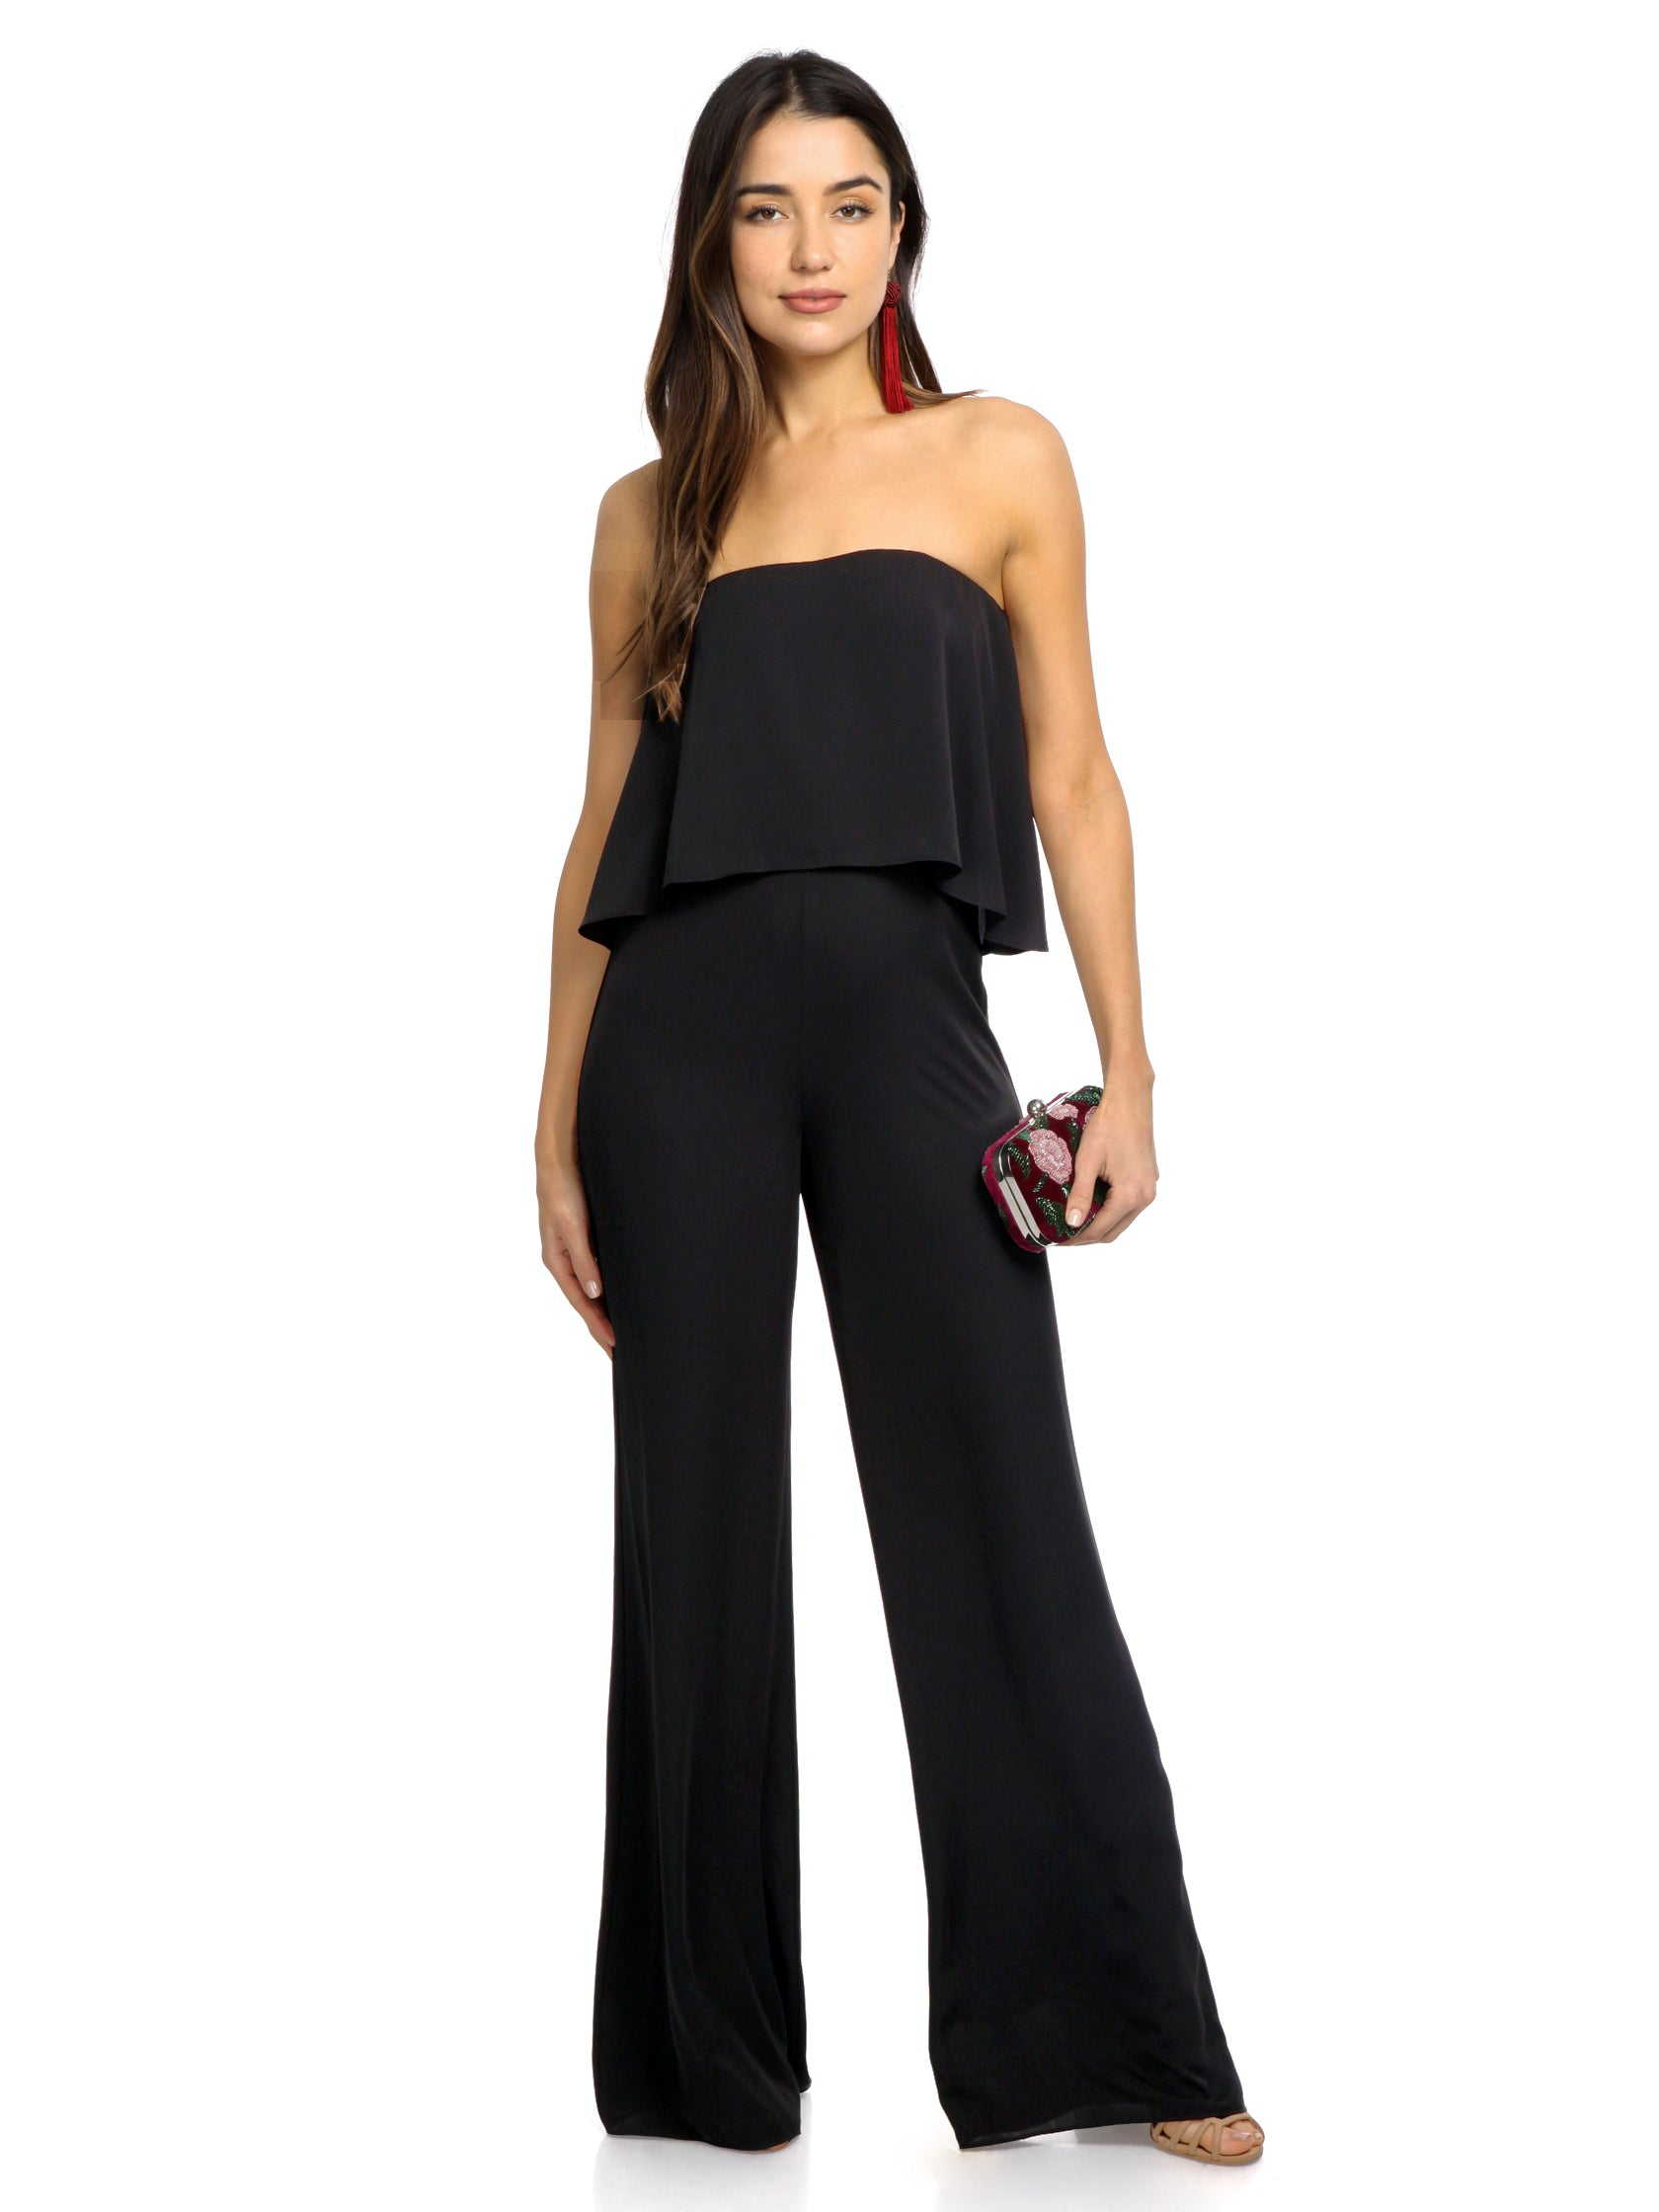 7a7075e47962 Girl outfit in a jumpsuit rental from Amanda Uprichard called Topanga  Jumpsuit